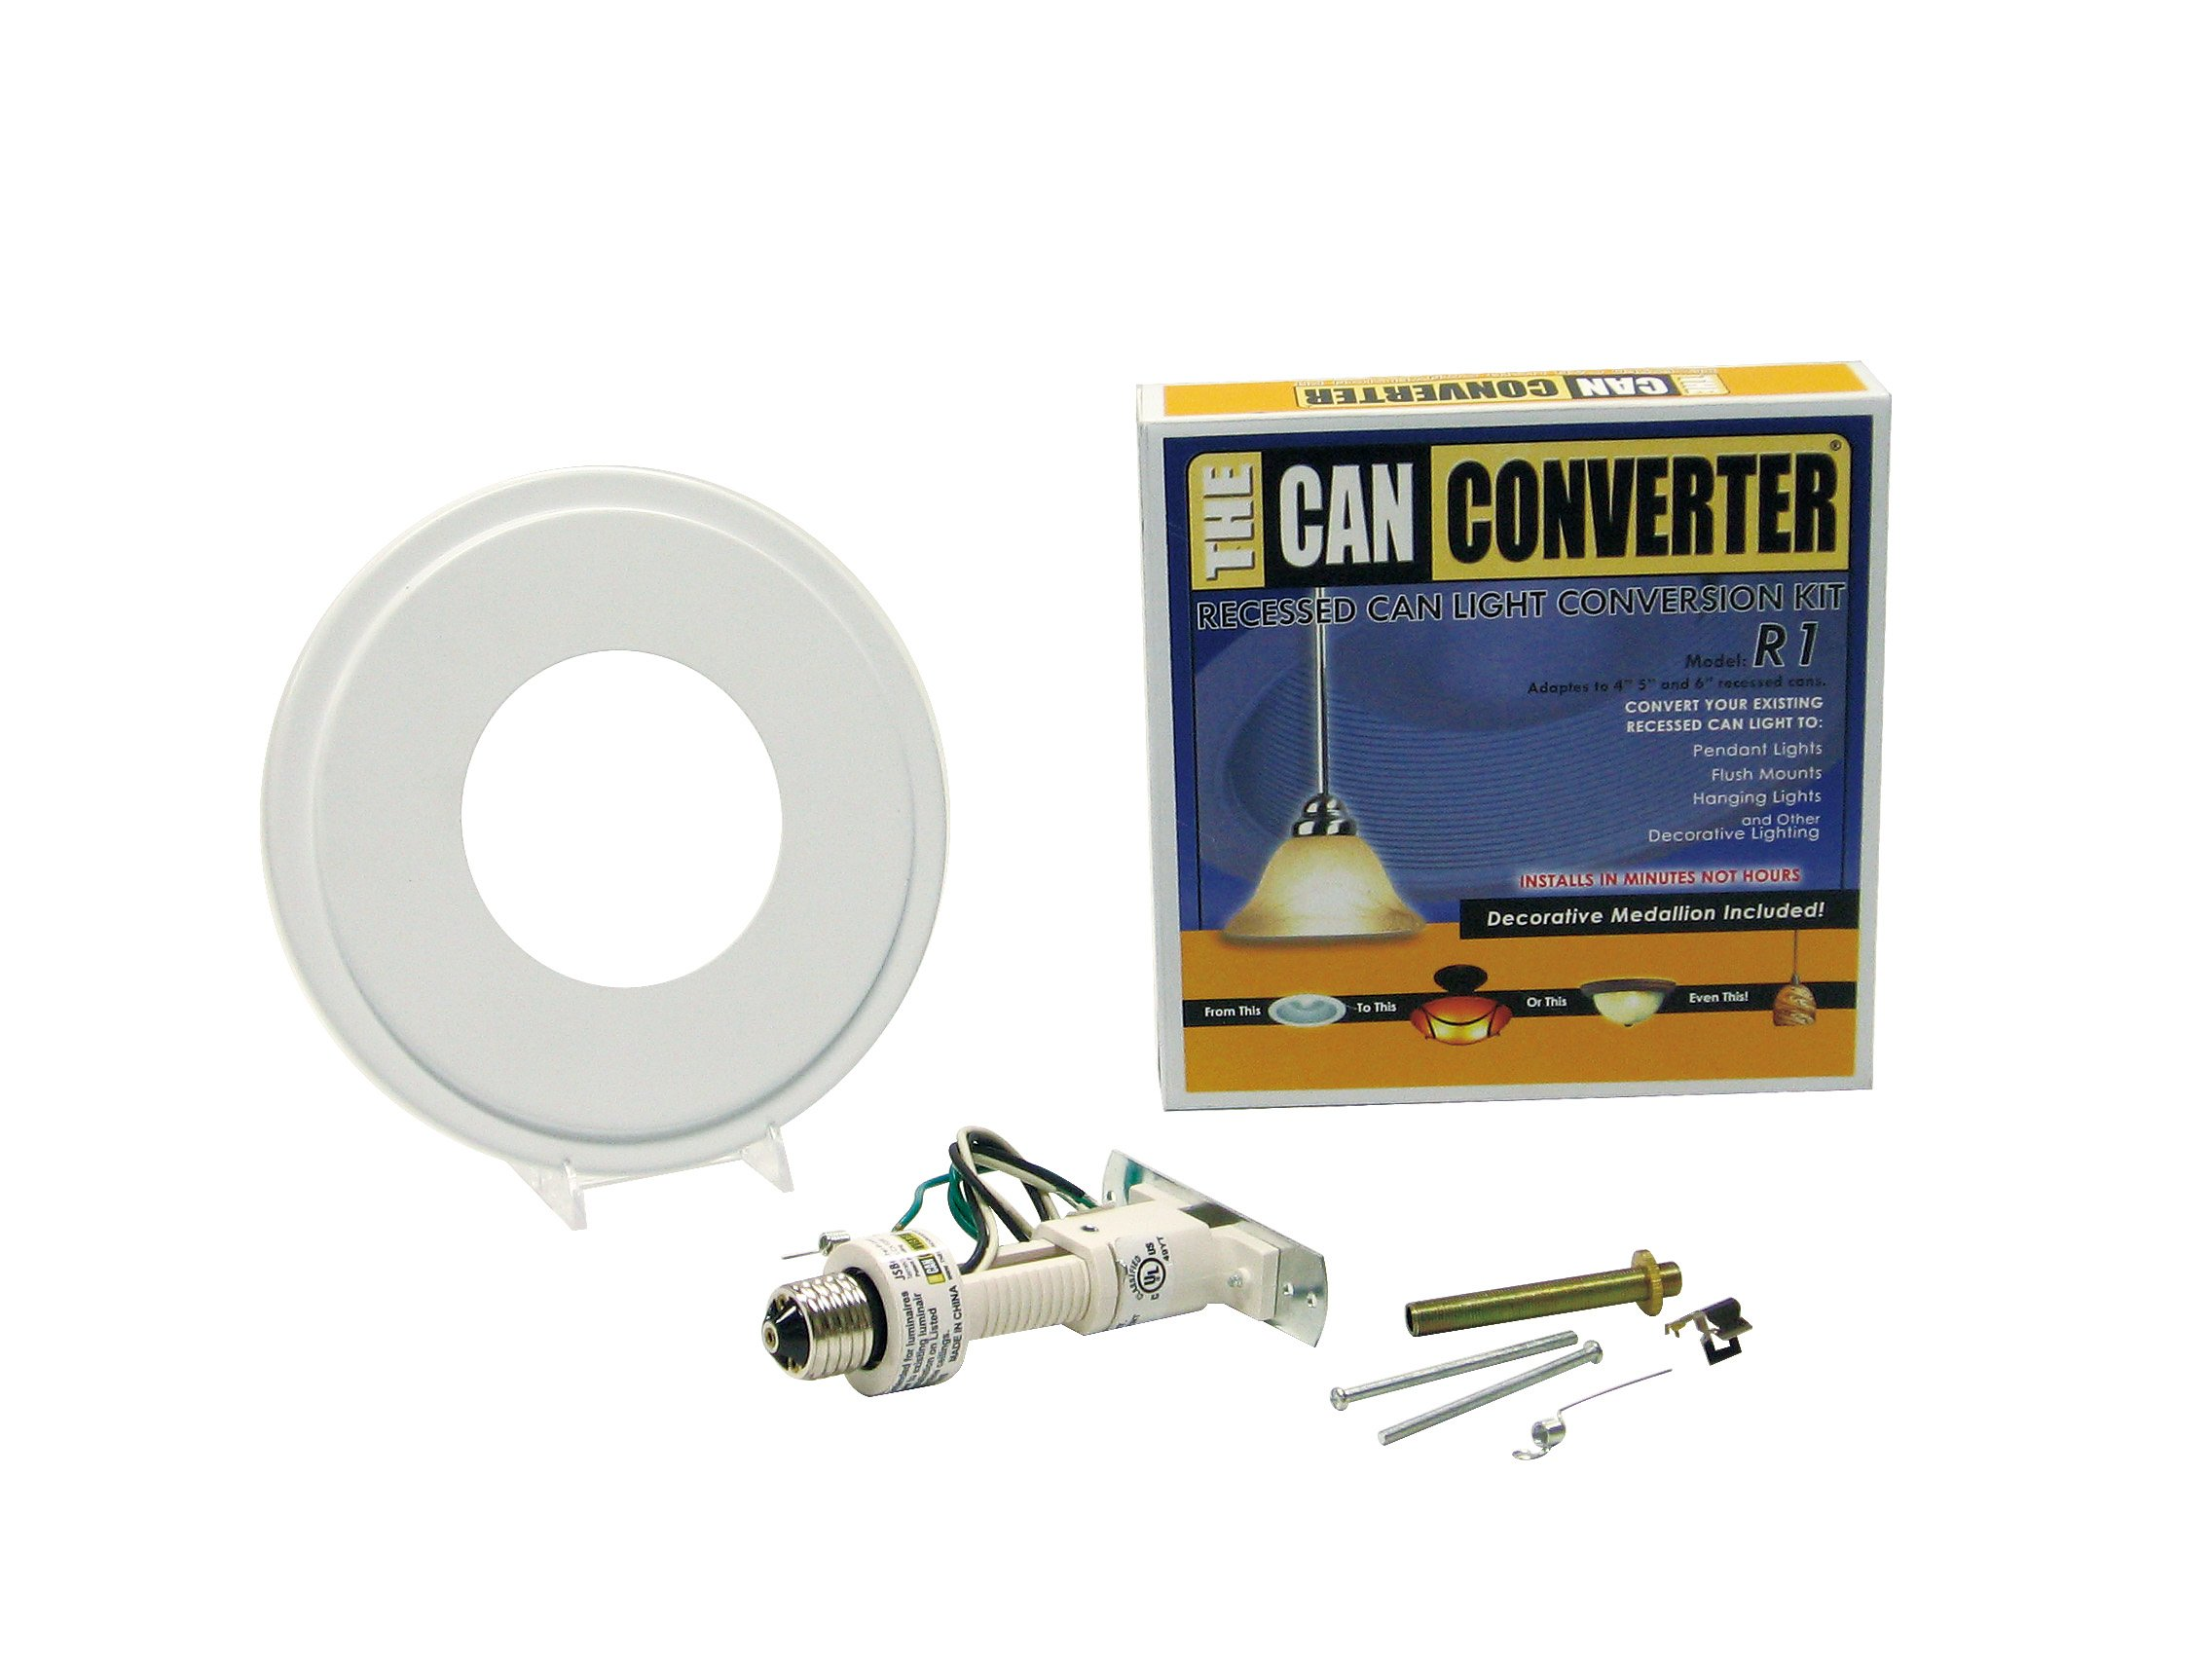 Recessed light conversion kit amazon the can converter r1 recessed can light conversion kit for 4 inch 5 aloadofball Images